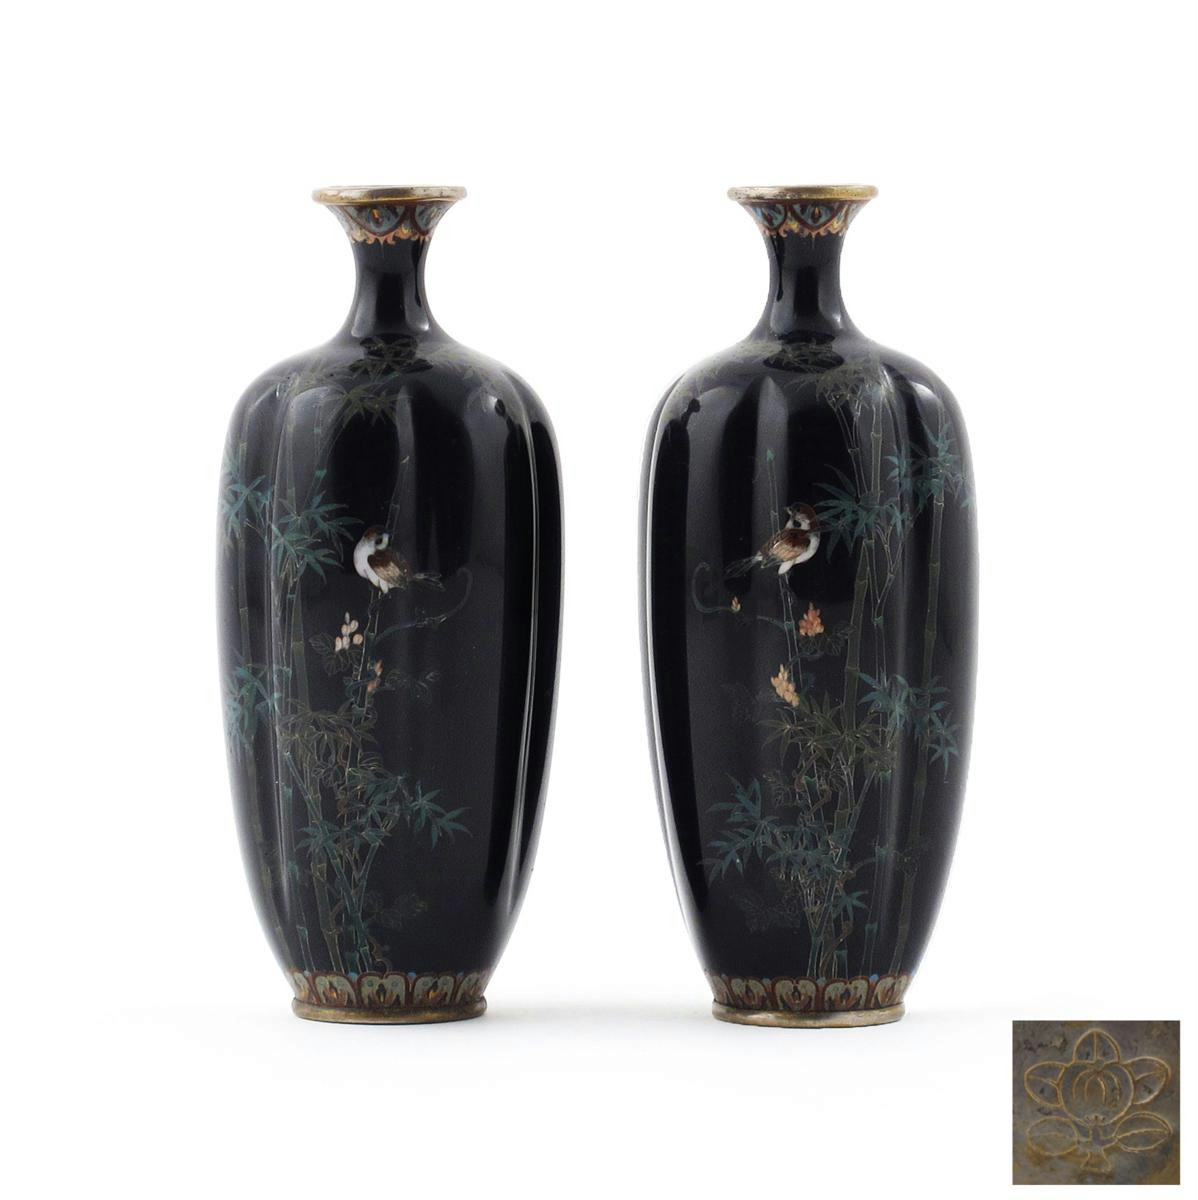 A pair of small japanese cloisonn vases meiji 1868 1912 lot 451 a pair of small japanese cloisonn vases meiji 1868 1912 both depicting a sparrow perched amongst bamboo on a dark blue ground the base stamped with the reviewsmspy